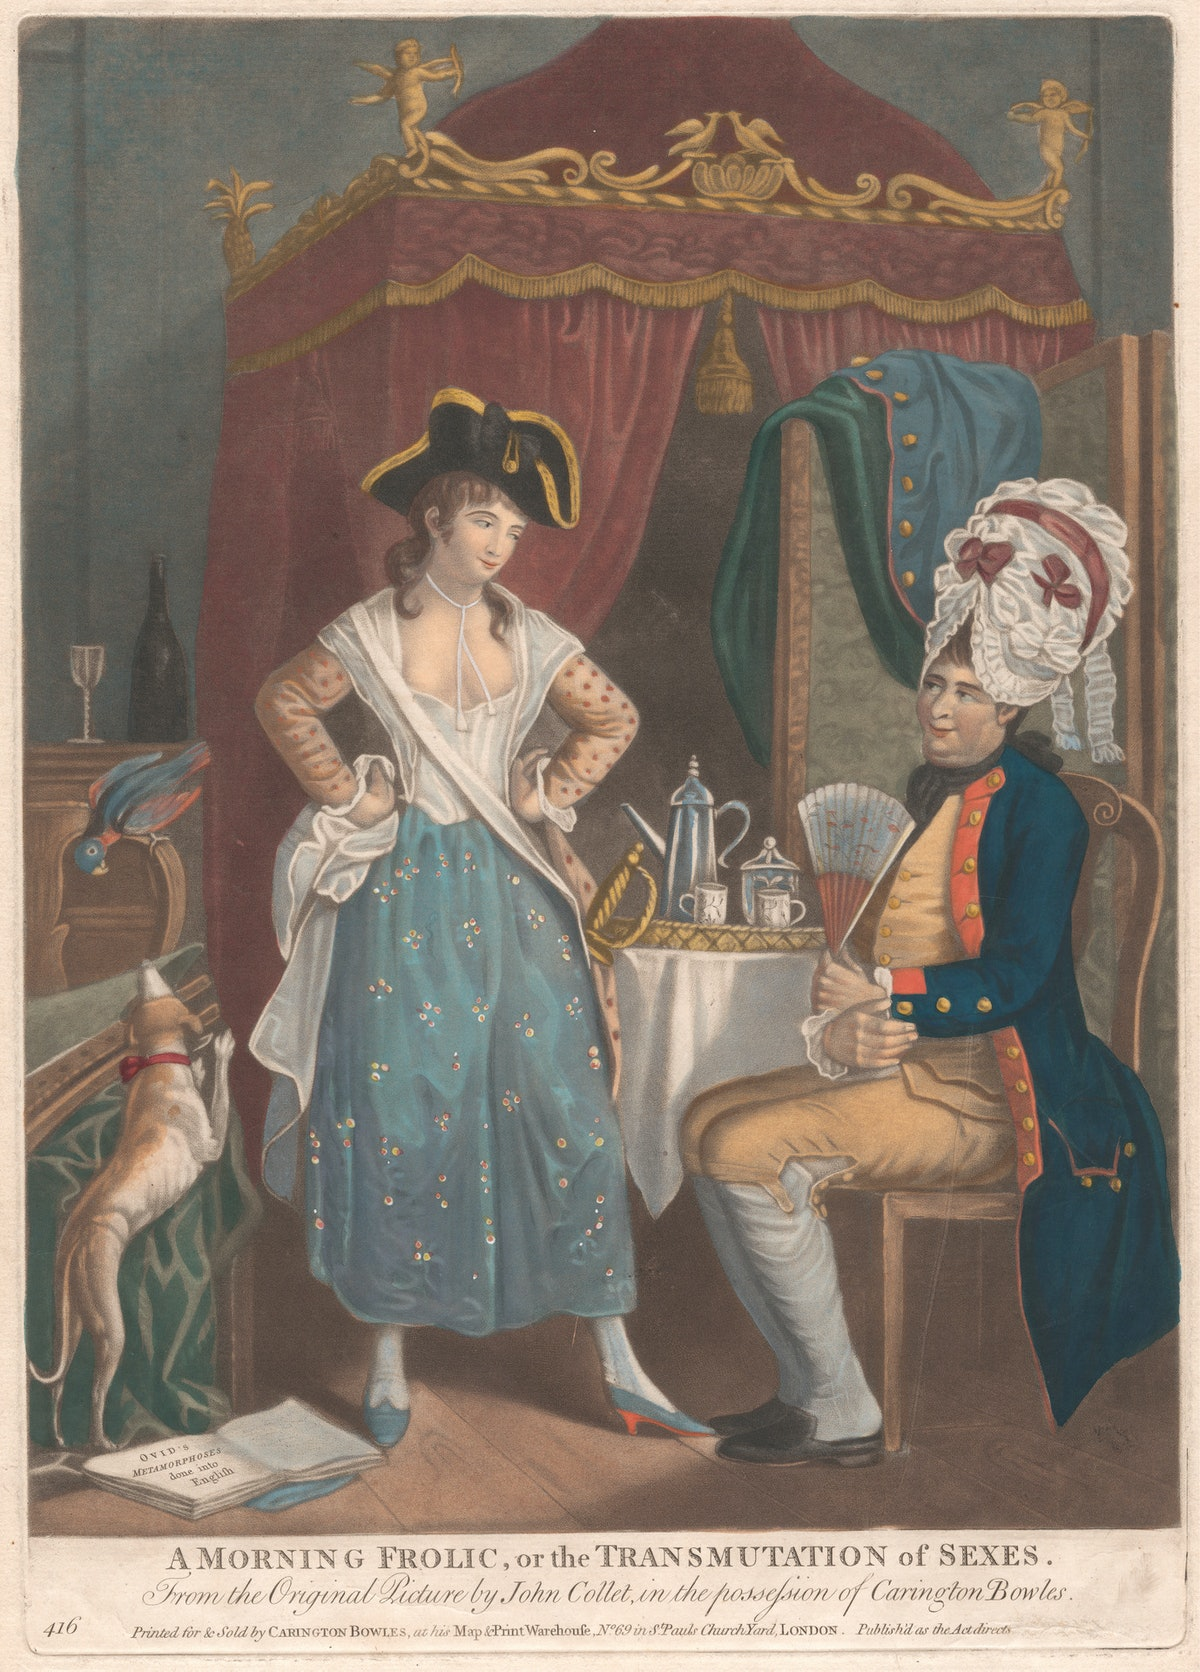 An 18th century image of a man in drag.